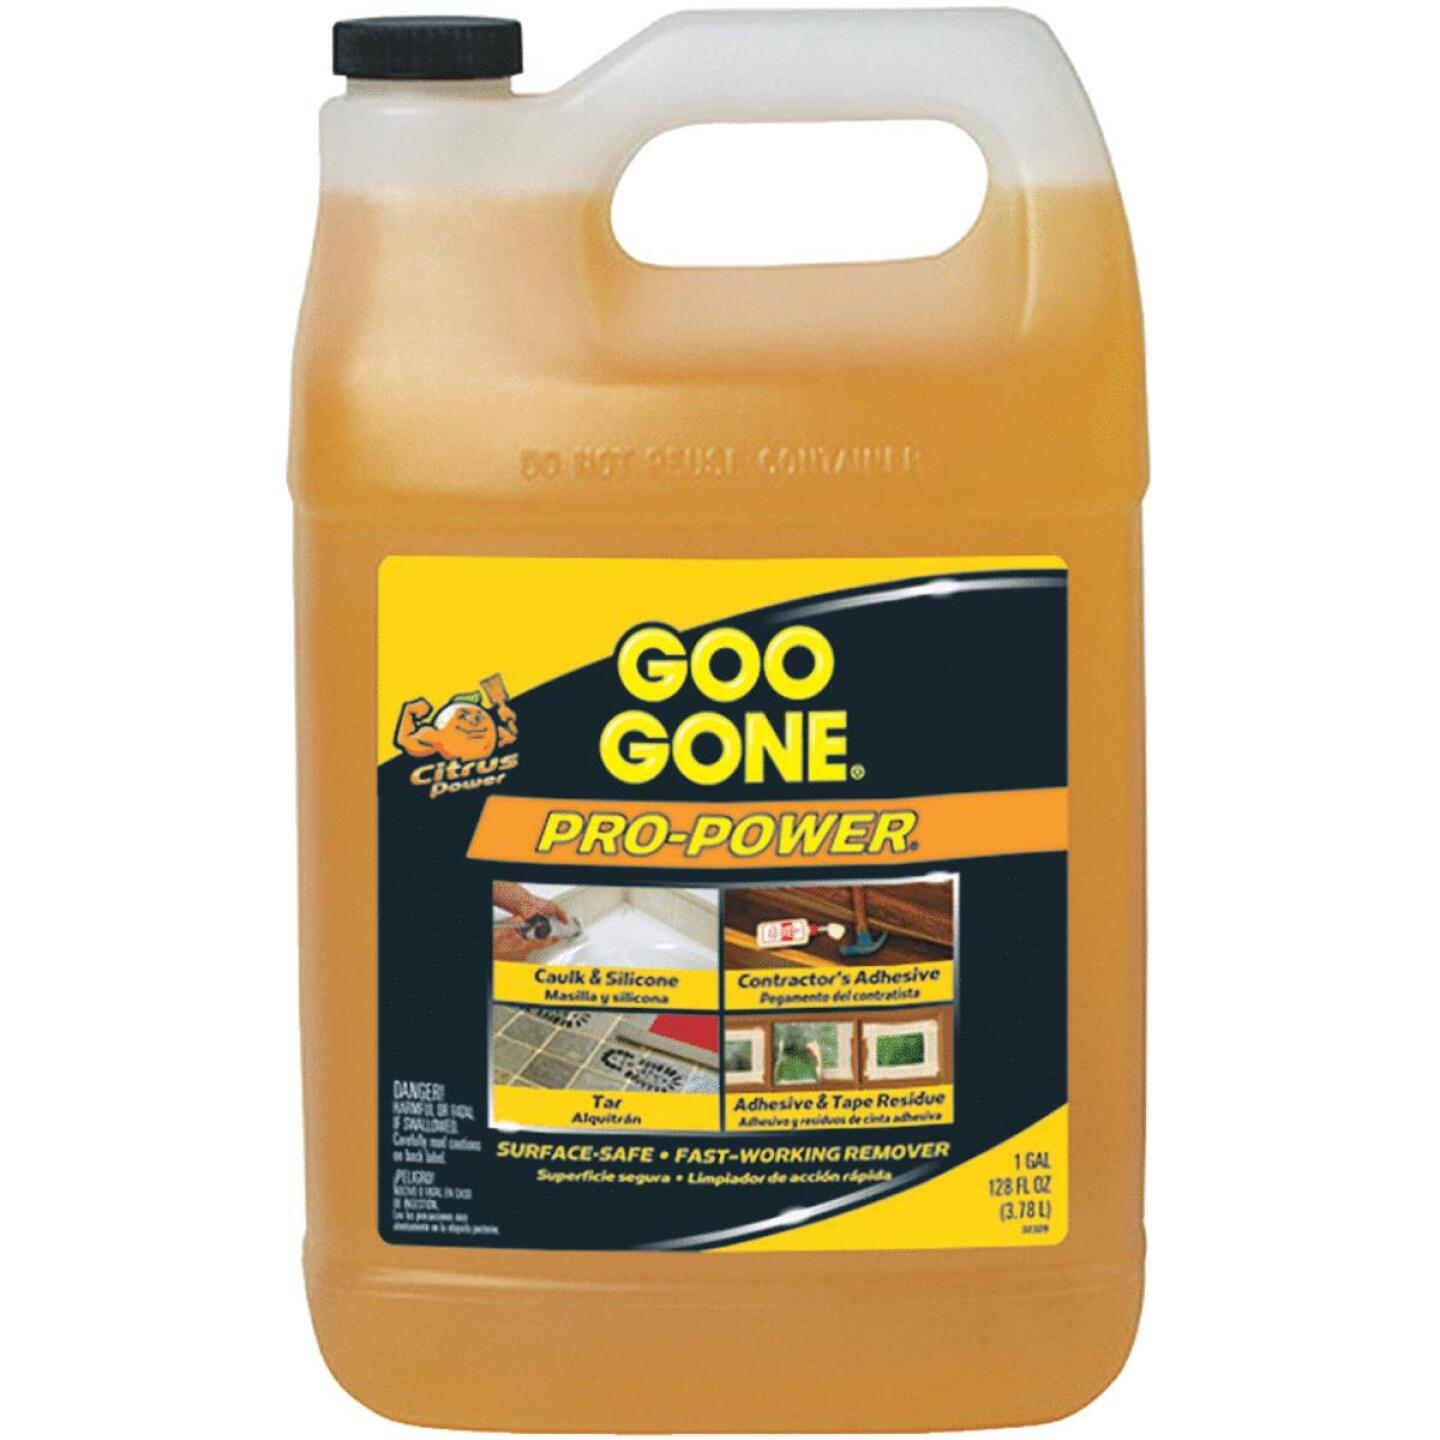 Goo Gone 1 Gal. Pro-Power Adhesive Remover Image 60